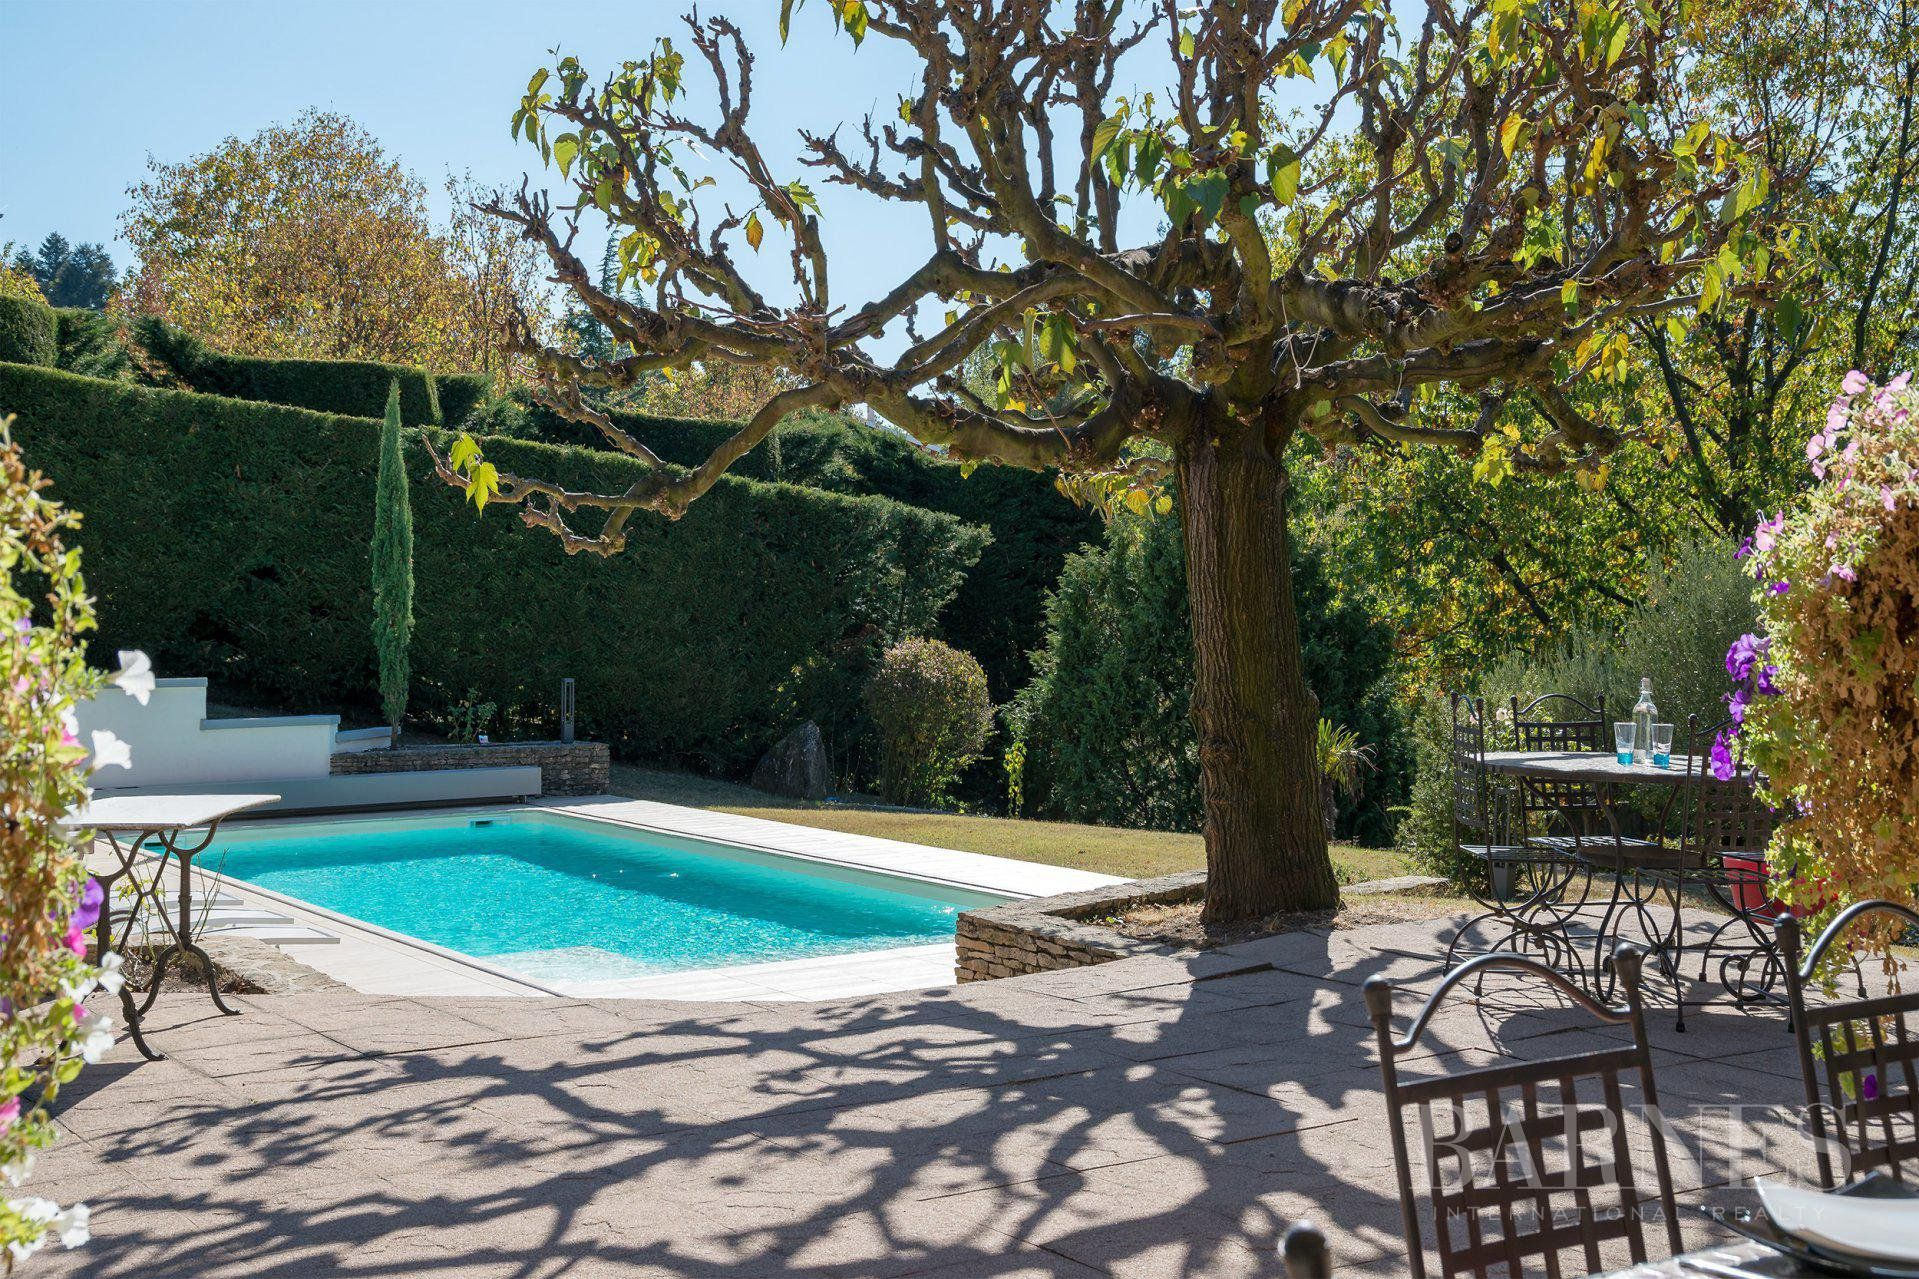 Vourles - 180 sqm family house - 6253 sqm of land with swimming pool - 4 bedrooms